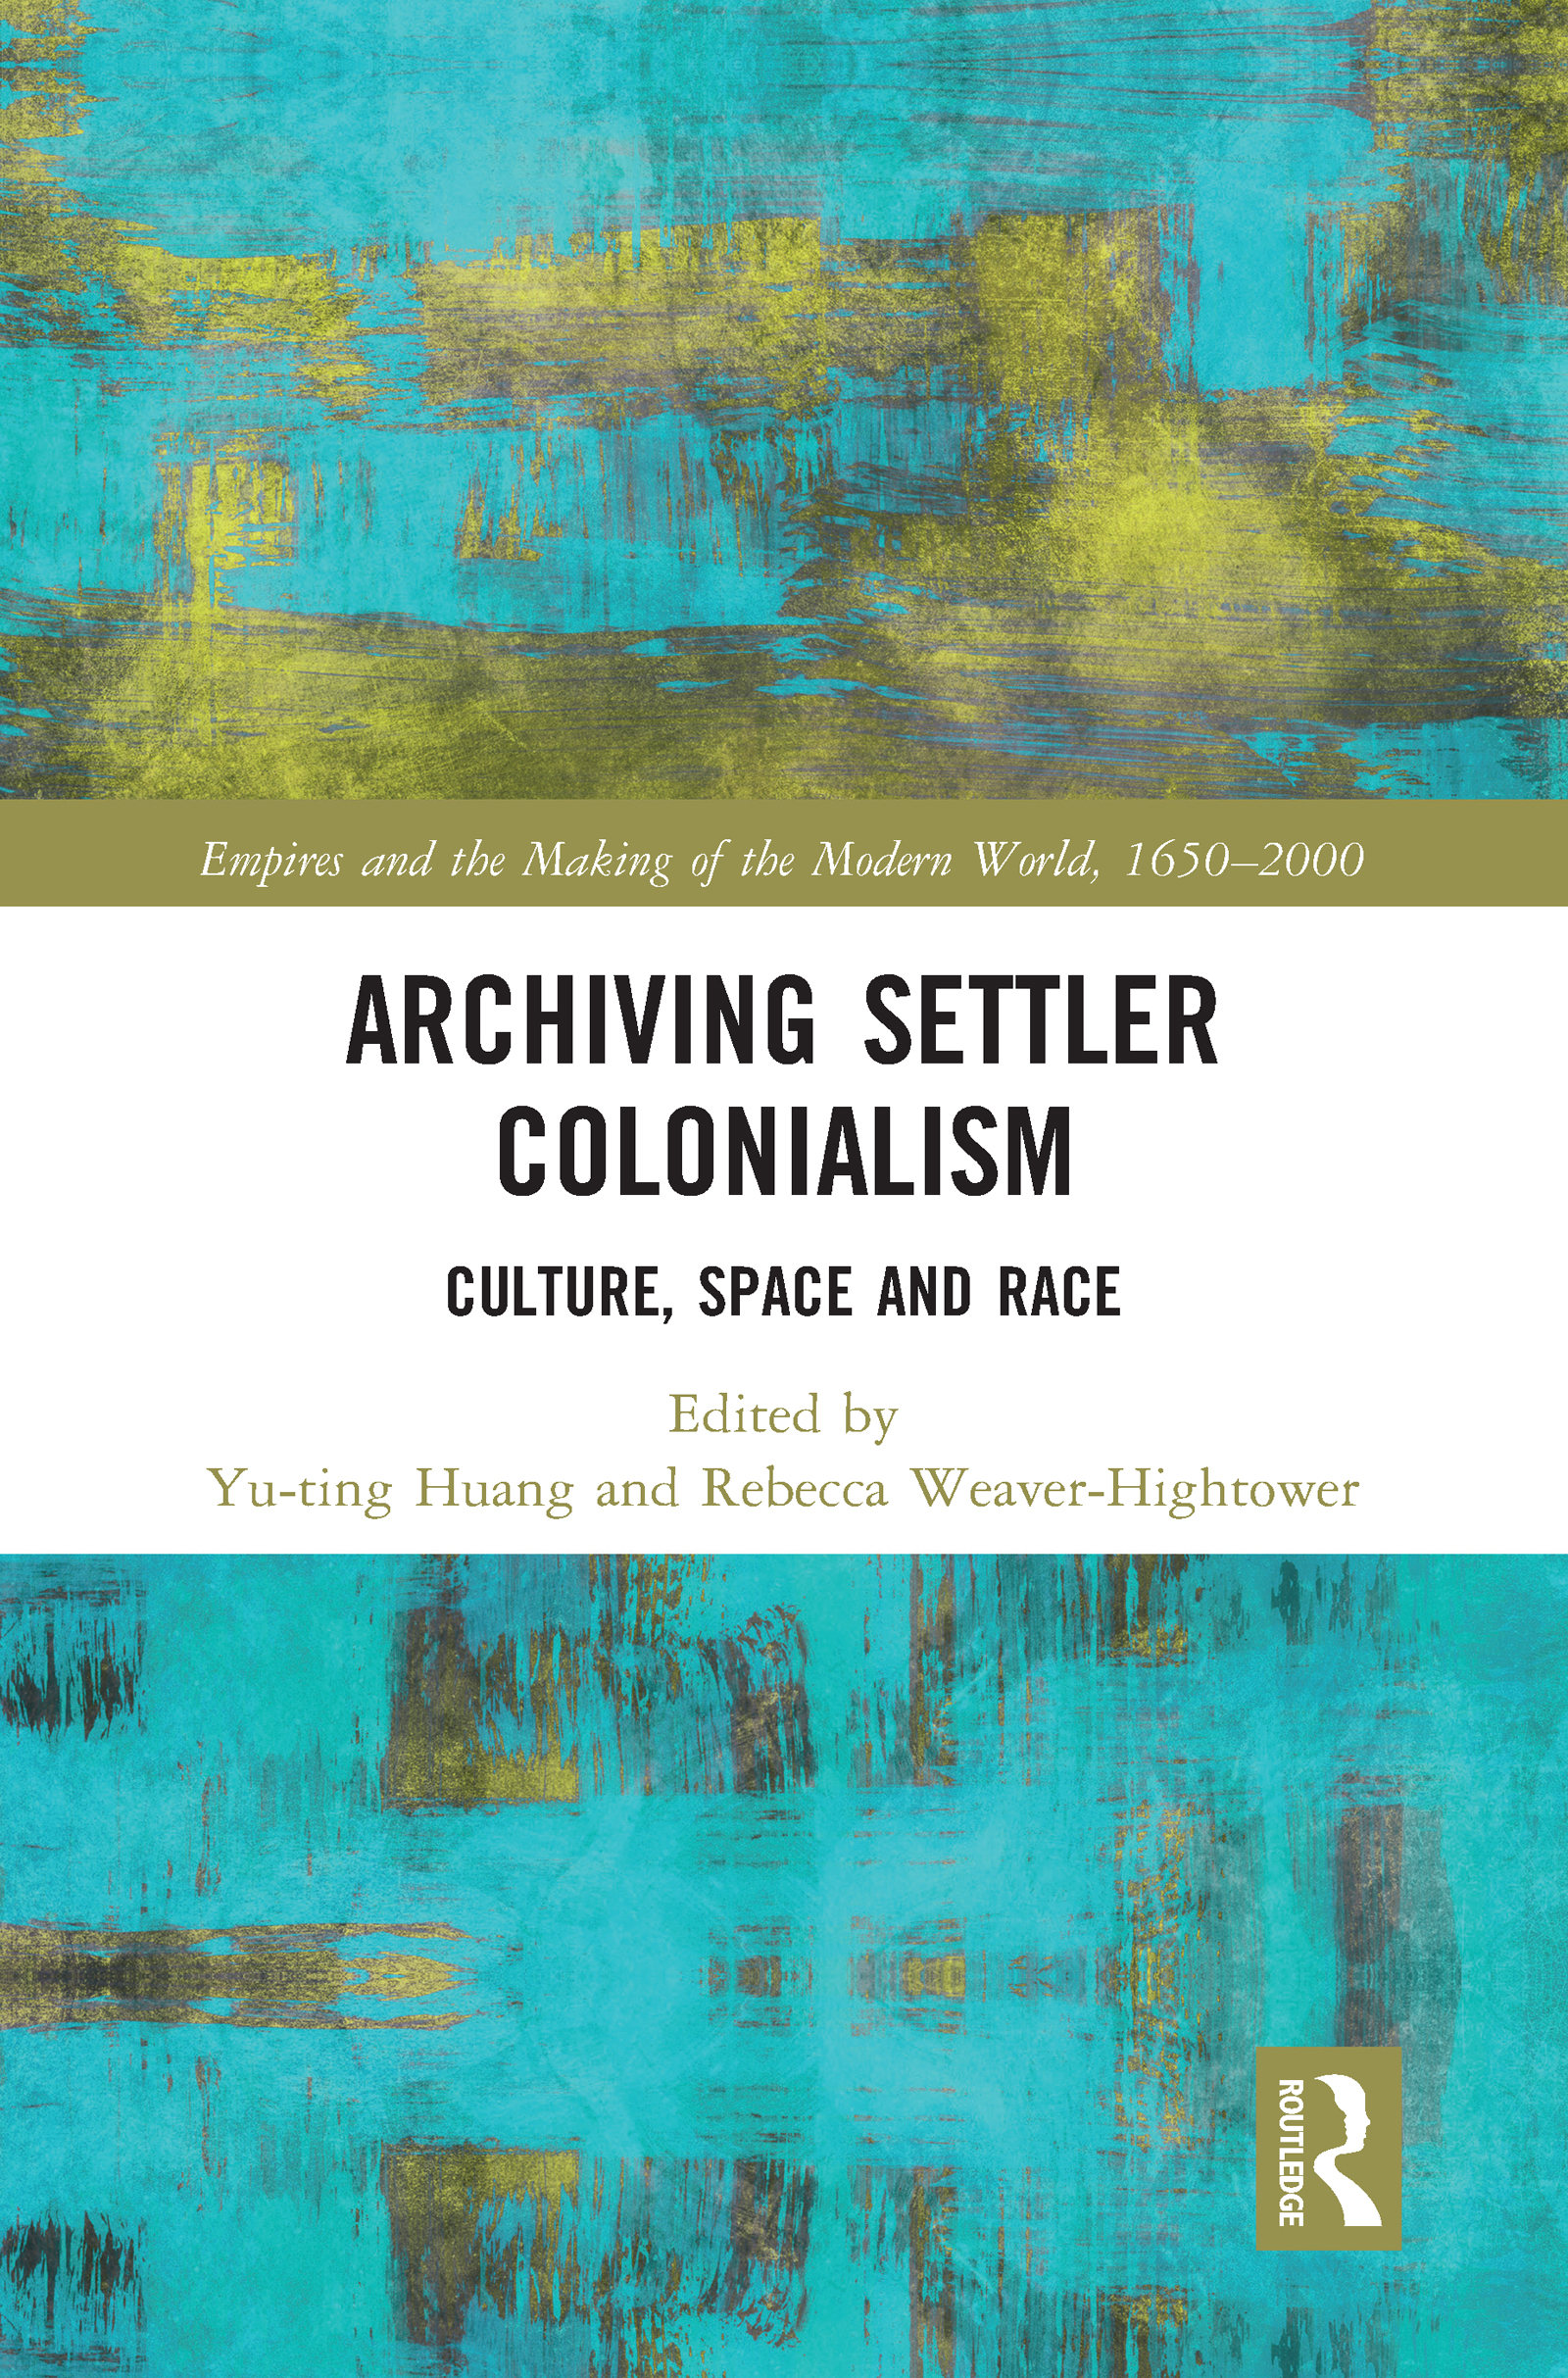 Archiving Settler Colonialism